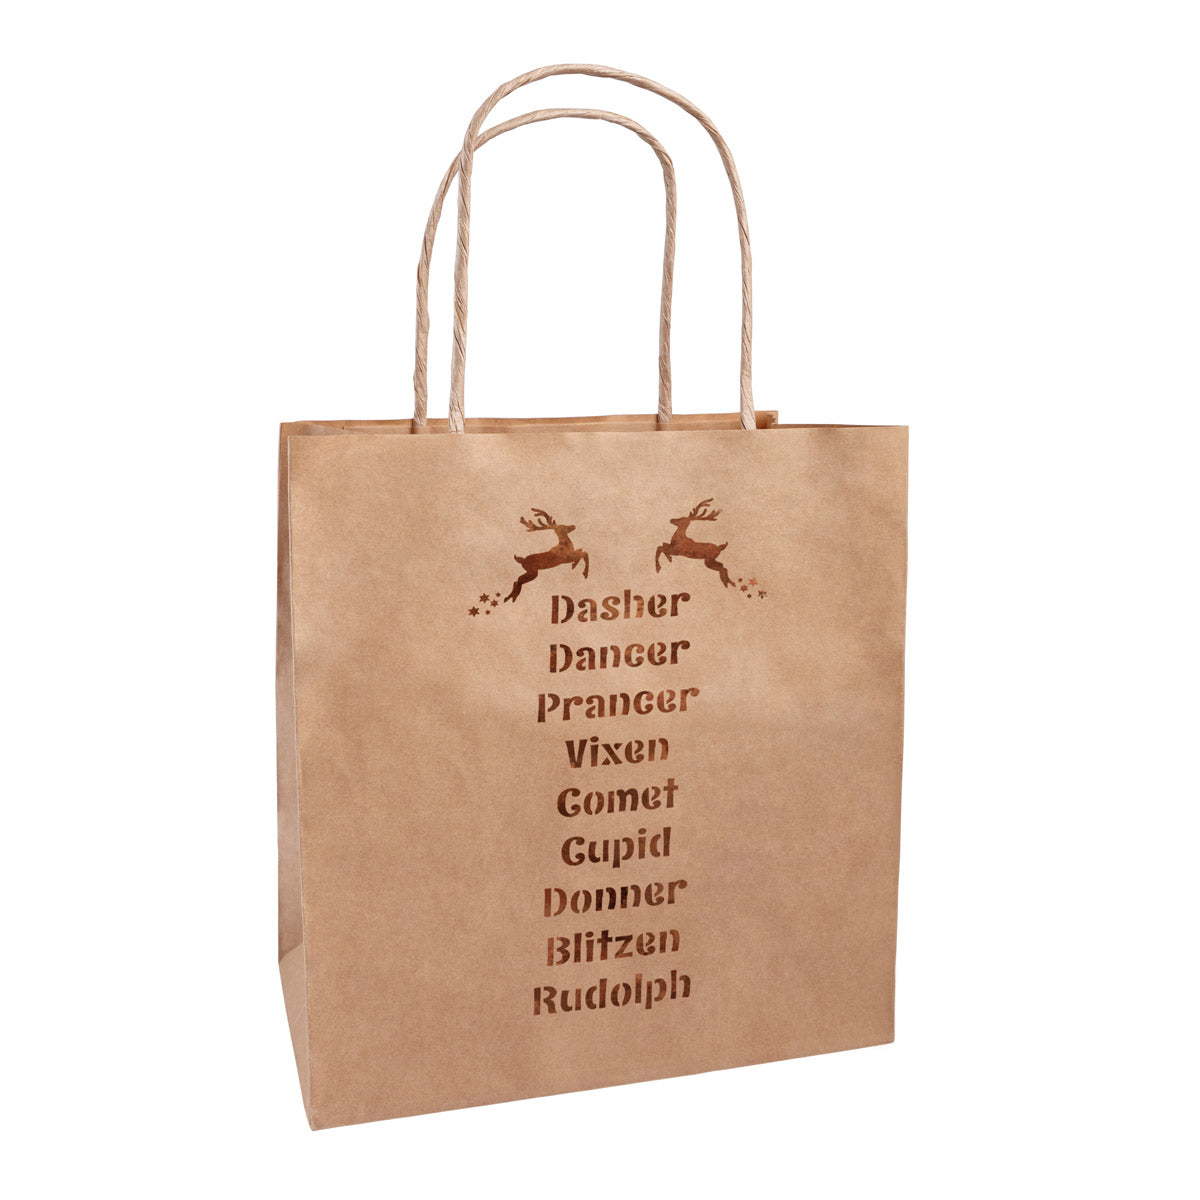 Santa's Reindeer Names Stencil on Bag